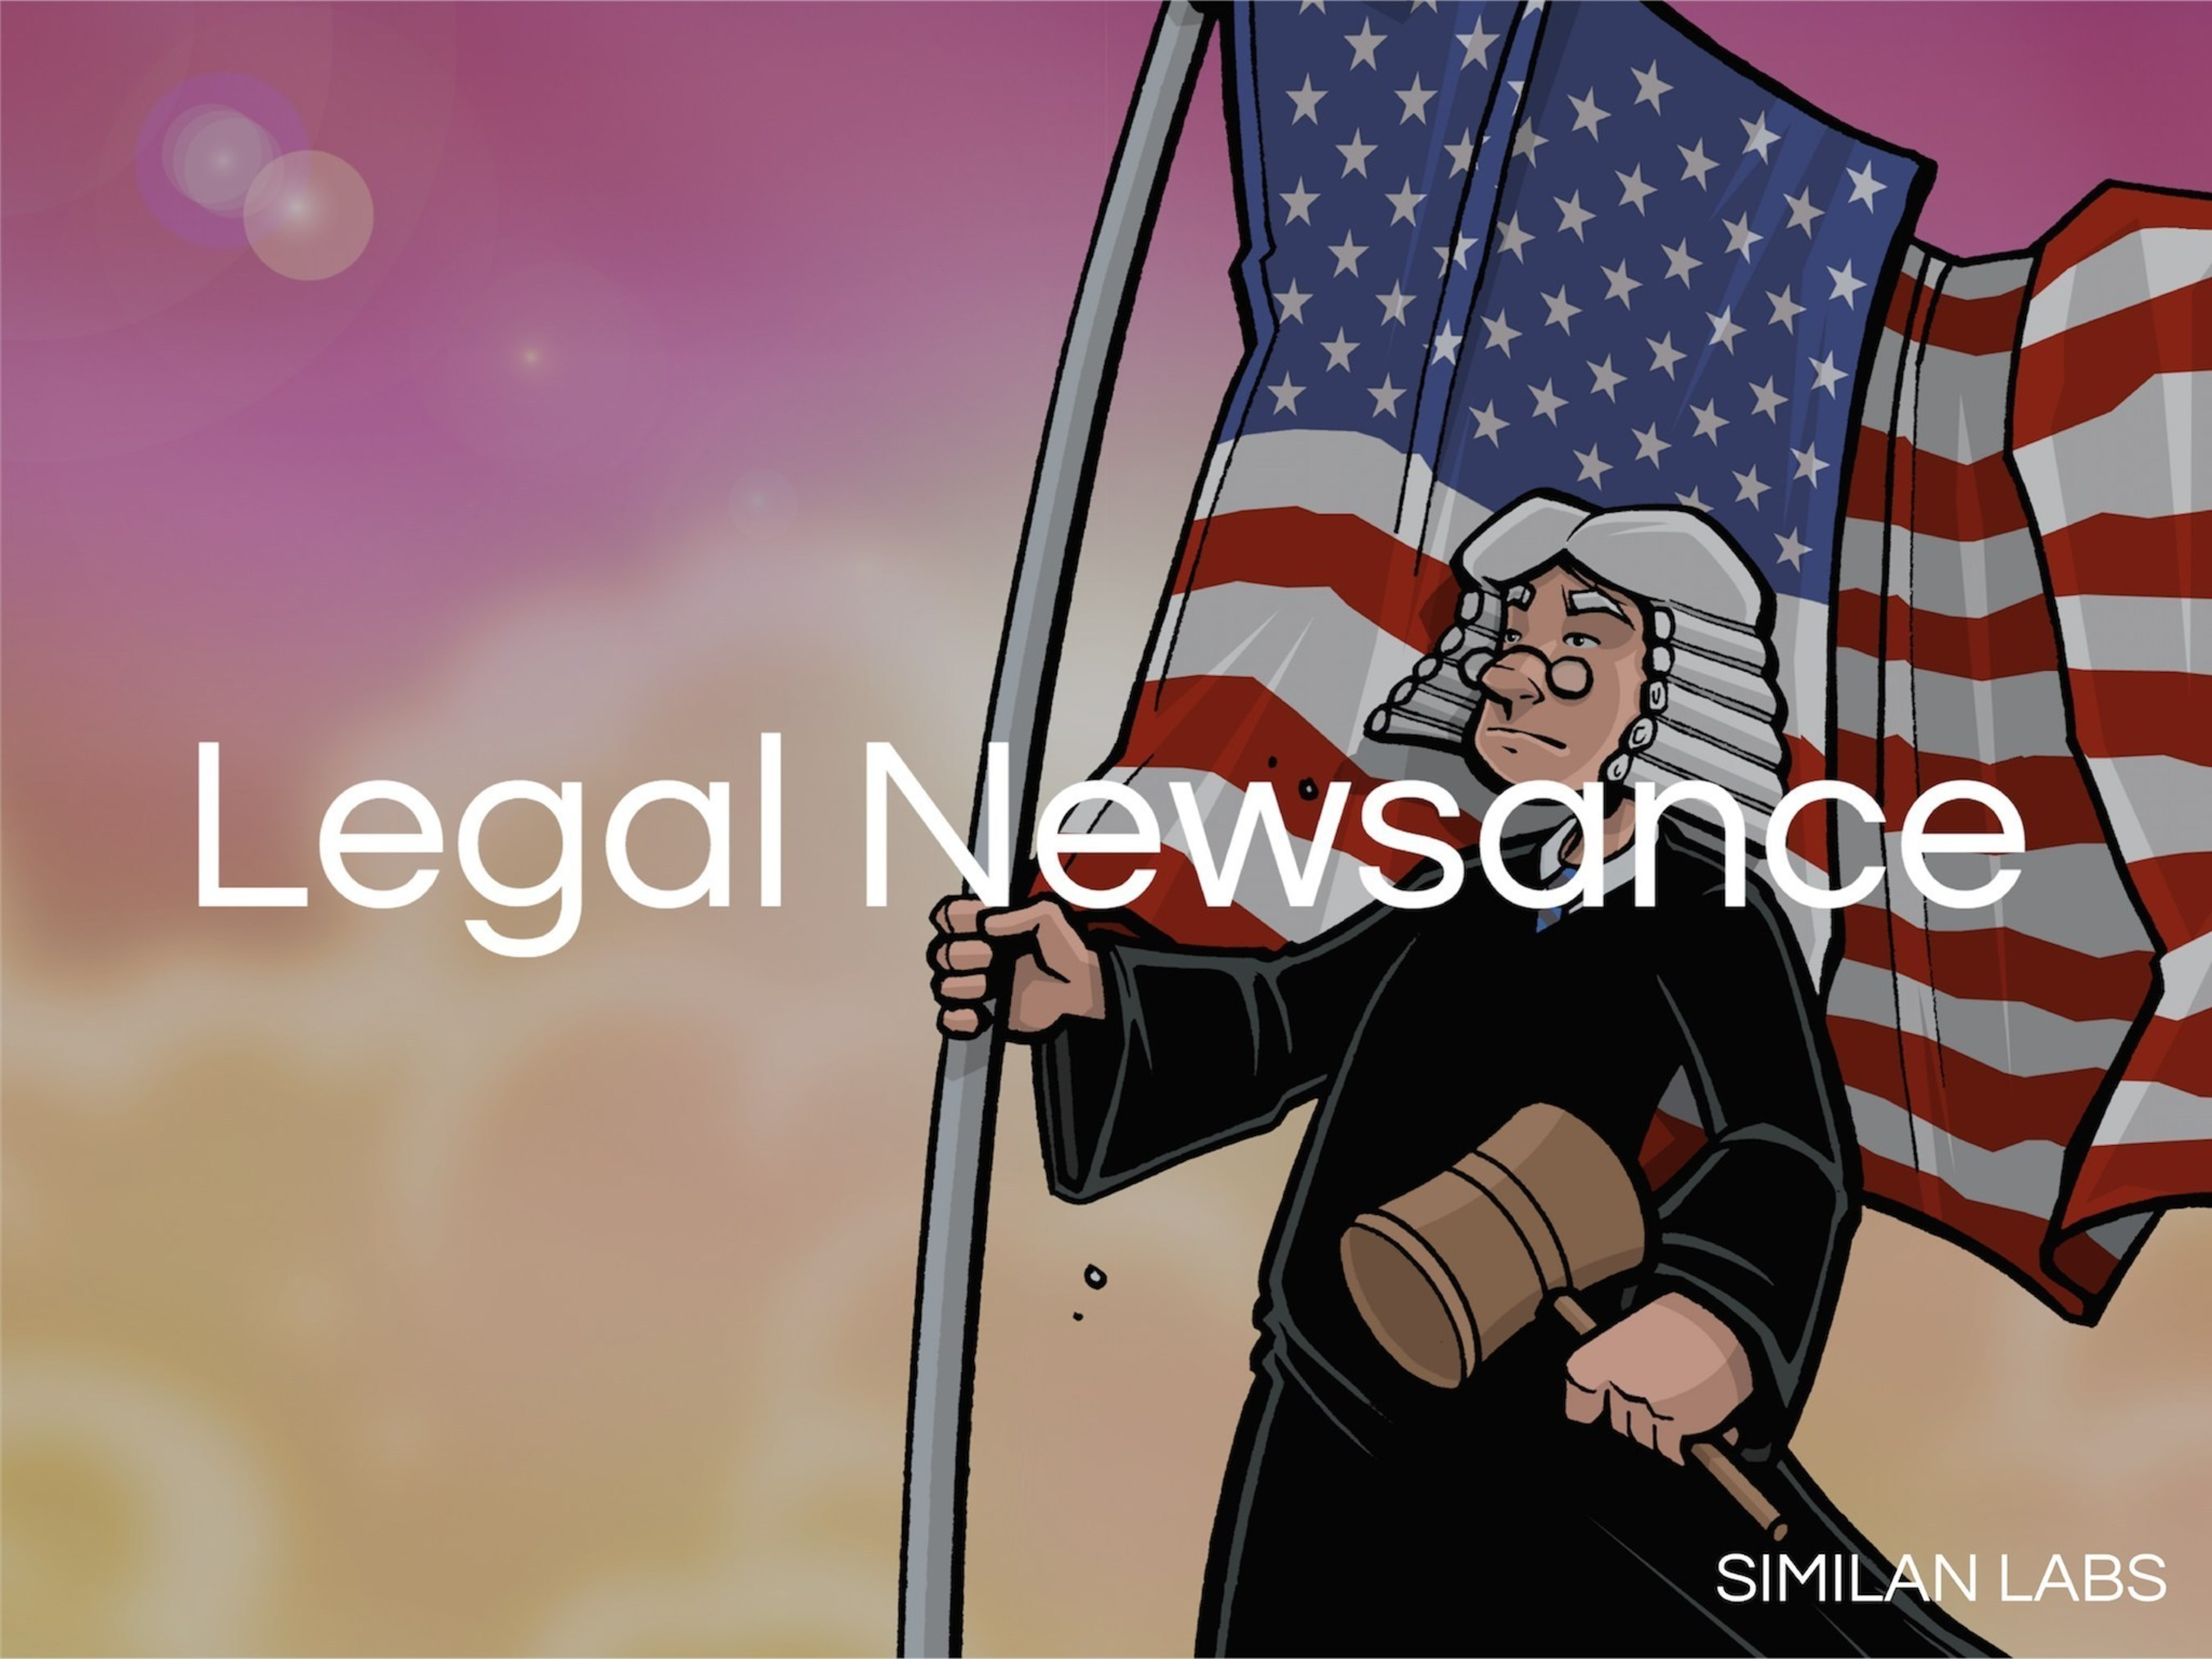 Curated by humans, Legal Newsance delivers current legal news, events, jobs and online law resources to your iPhone, iPad or Android.